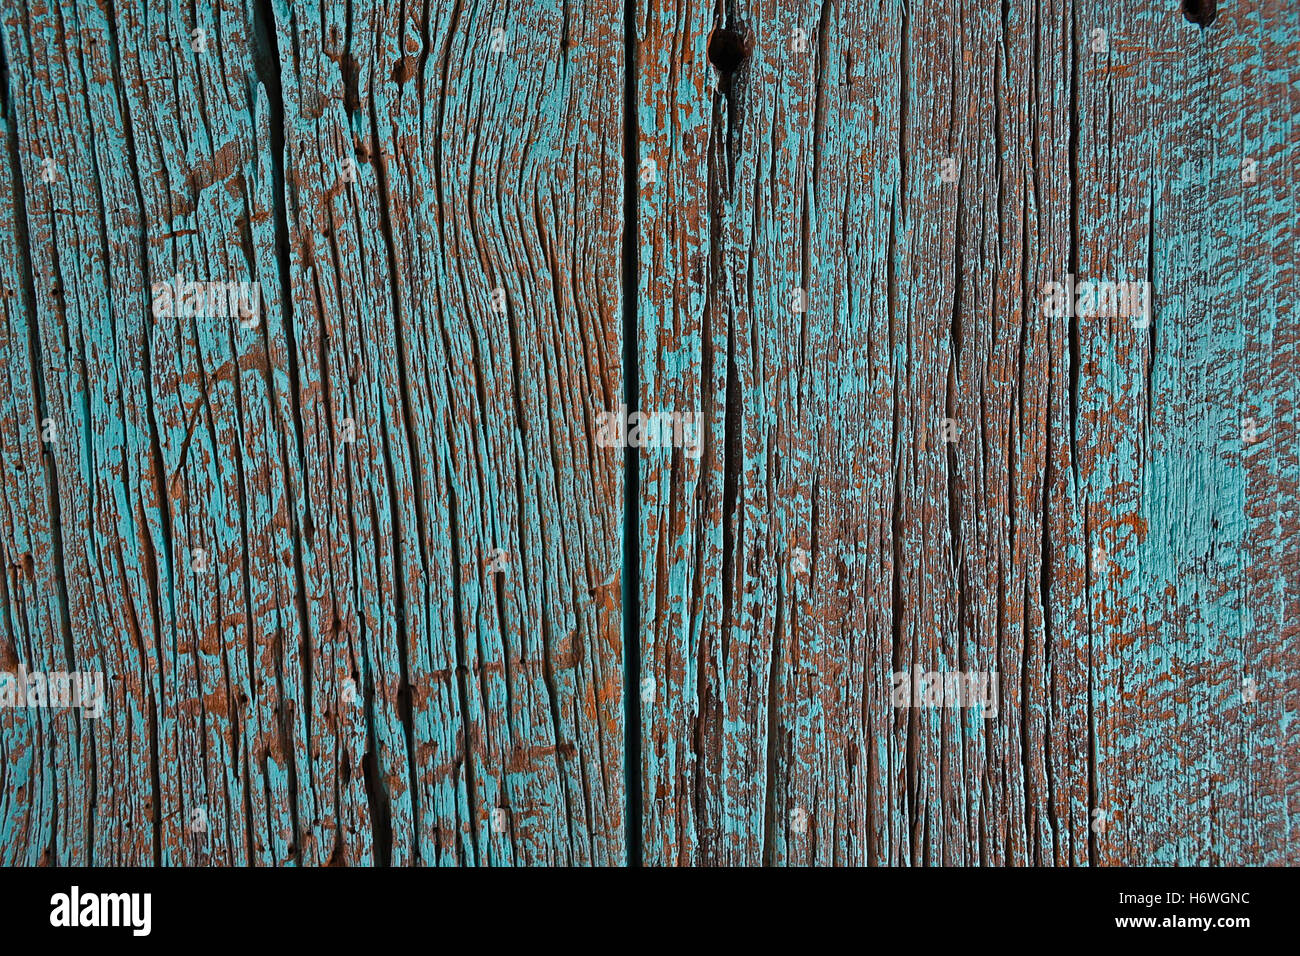 close up of turquoise painted barn wood - Stock Image